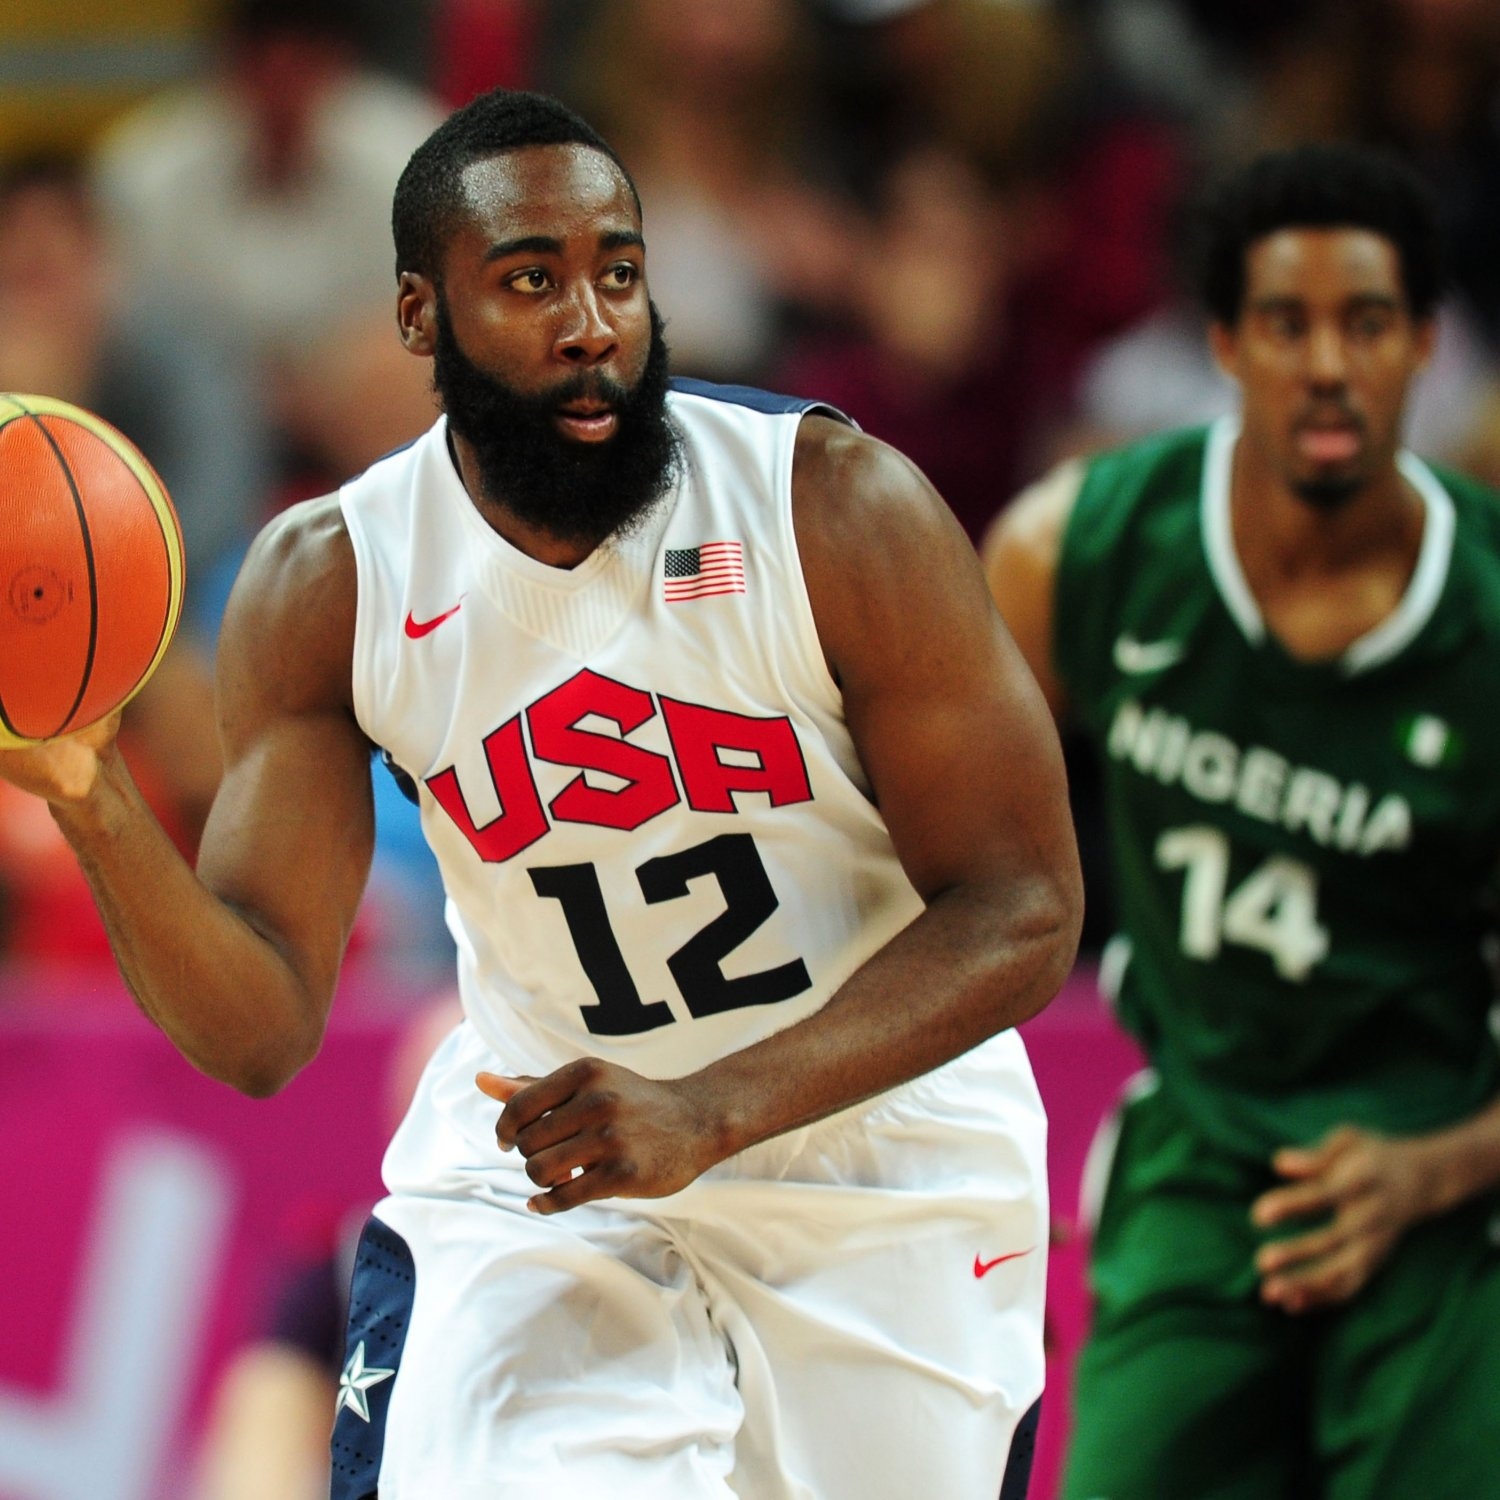 James Harden Quadruple Team: Olympic Basketball 2012: Why James Harden Doesn't Belong